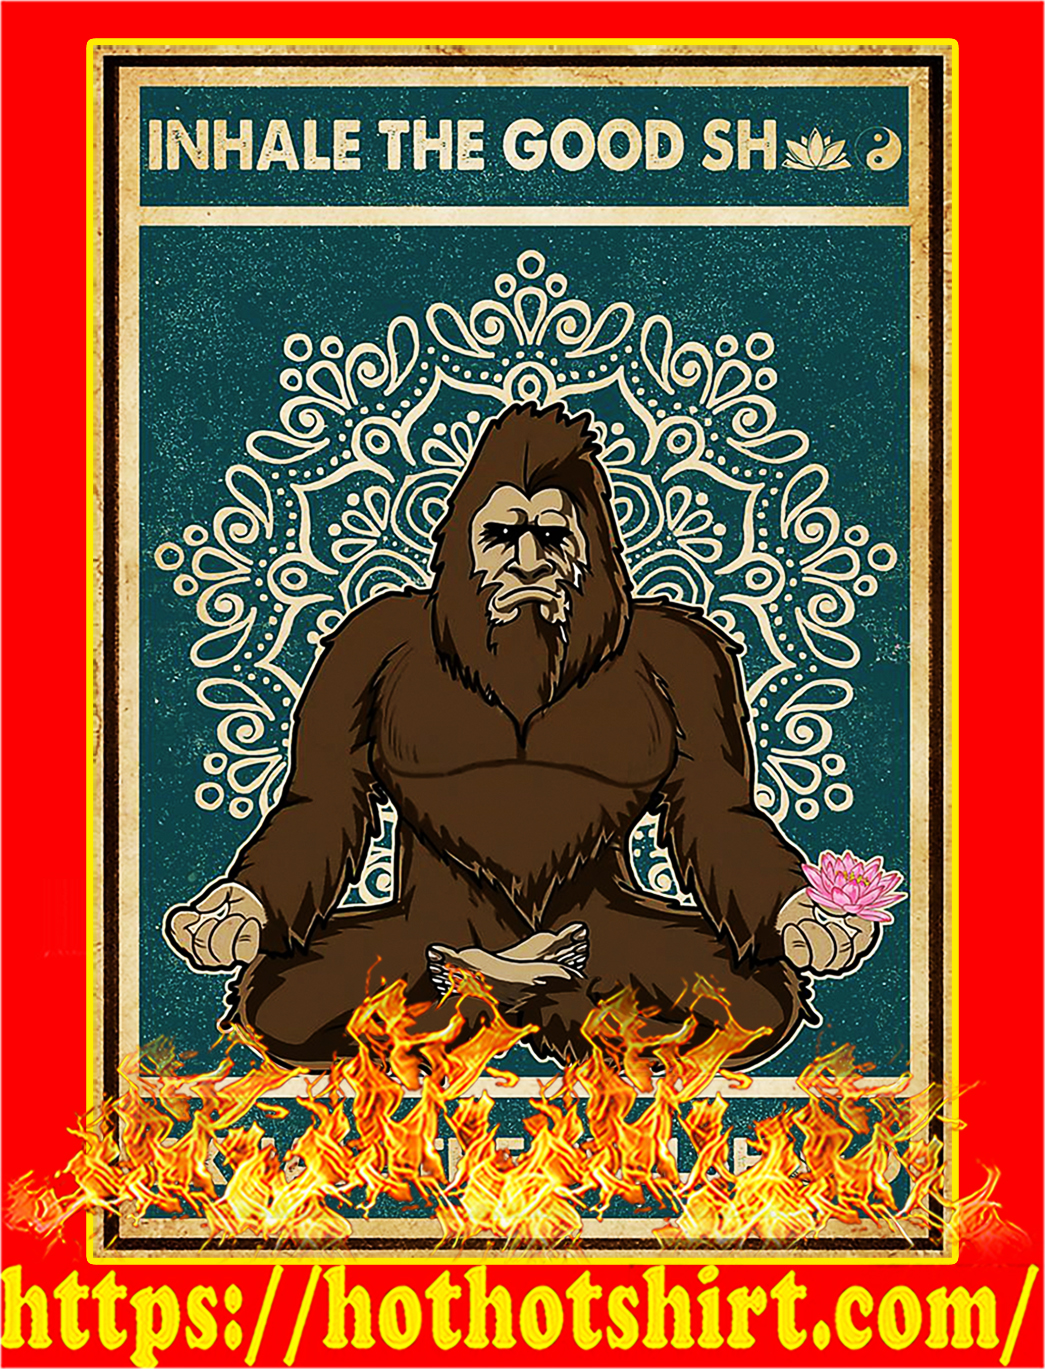 Bigfoot Inhale the good shit exhale the bullshit poster - A2